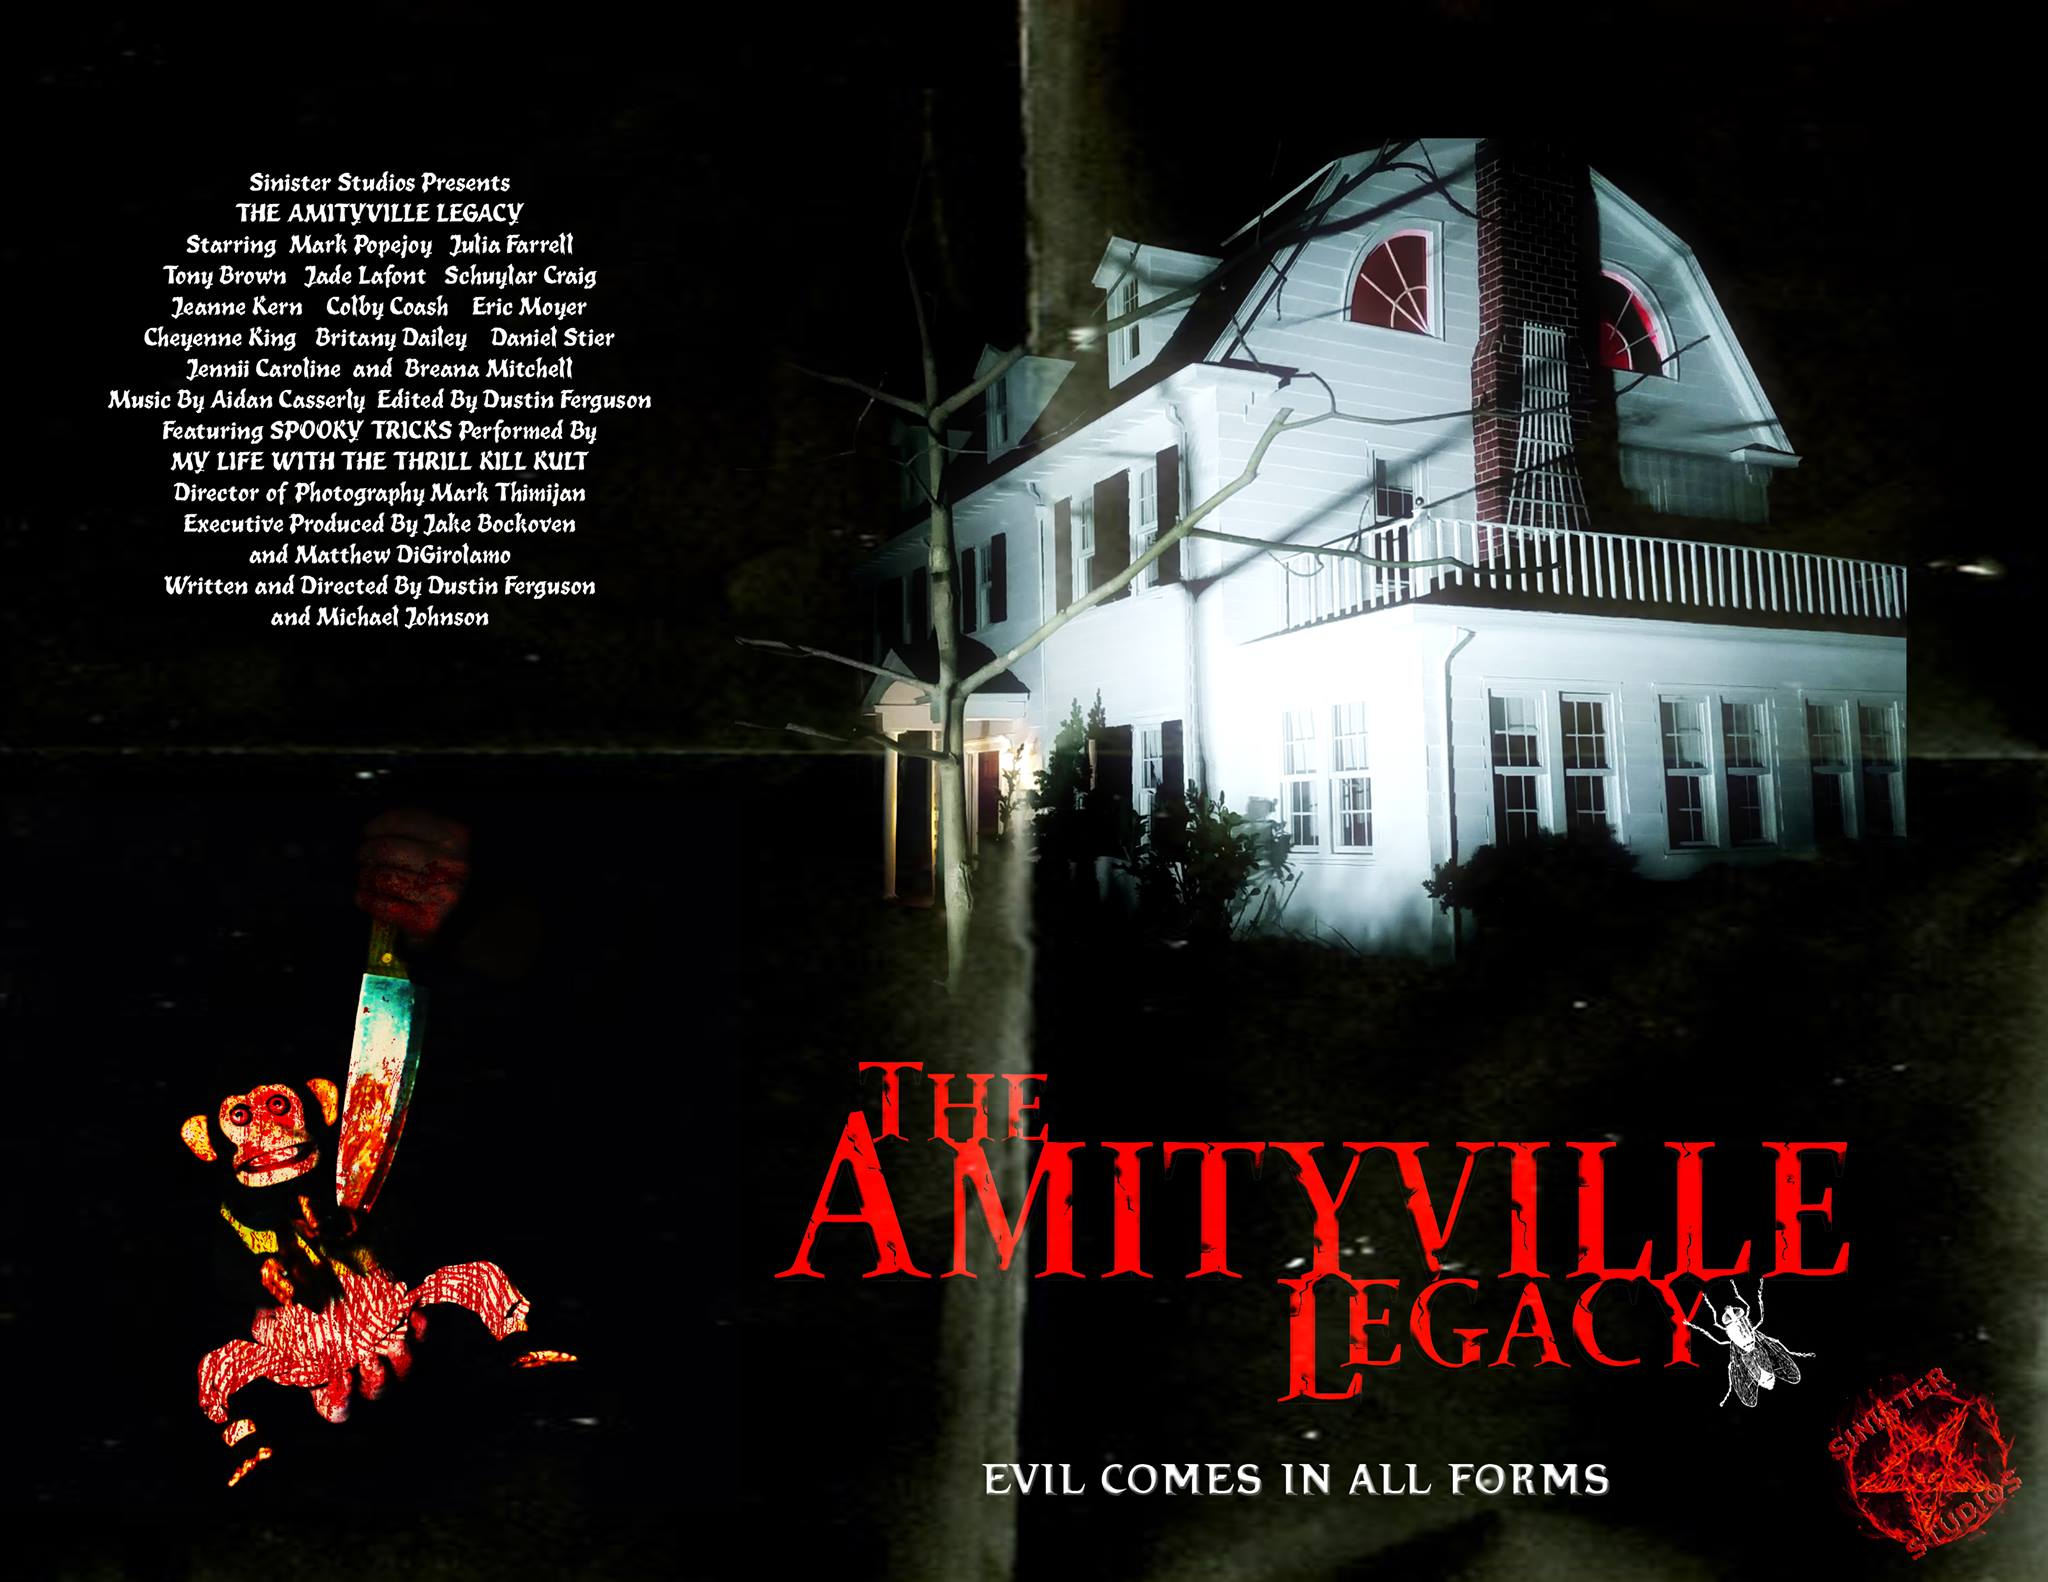 The-Amityville-Legacy-2016-house-monkey-postermondozillaThe-Amityville-Legacy-2016-house-monkey-posterScreen Shot 2016-08-25 at 17.20.26The-Amityville-Legacy-2016-blood-splattered-windshieldThe-Amityville-Legacy-2016-evil-toy-monkey-posterAmityville-Legacy-alternate-poster-2016The-Amityville-Legacy-2016-posterThe-Amityville-Legacy-DVD